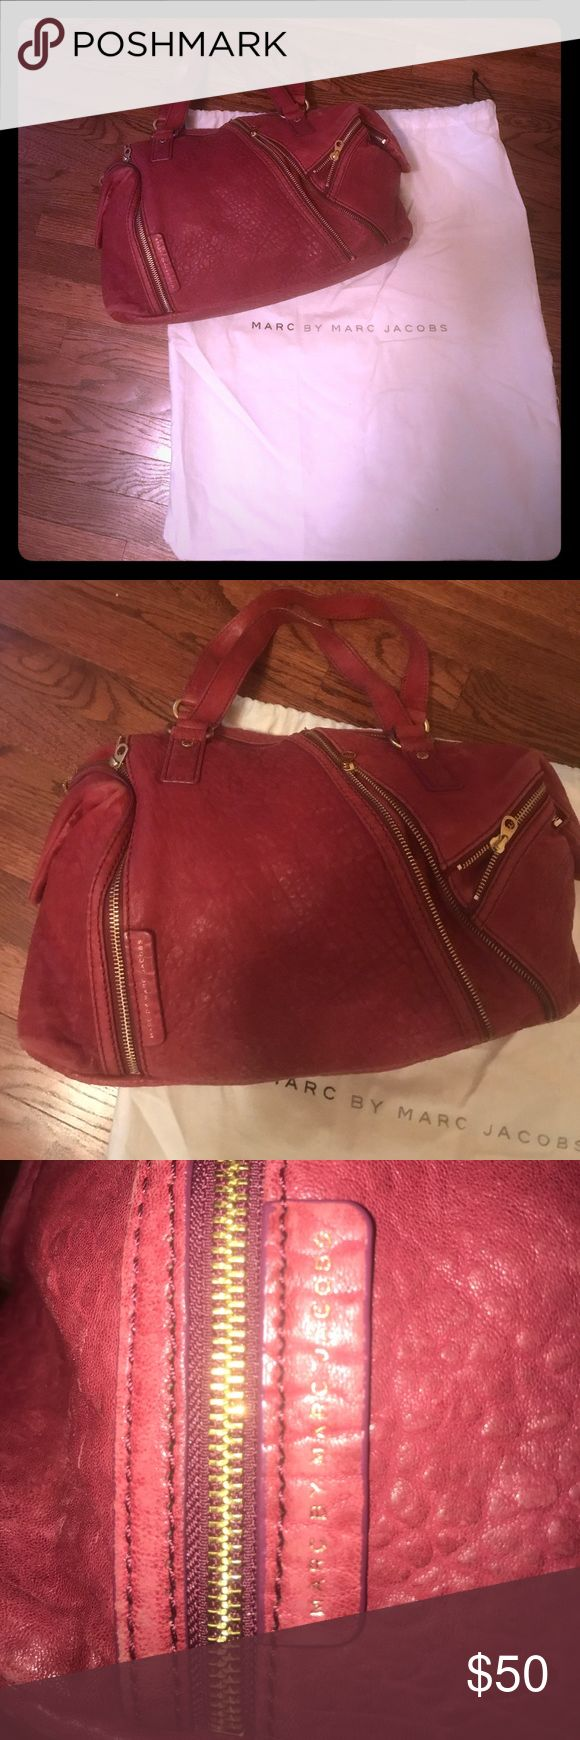 Marc Jacobs Shapeshifter Pink and Gold Handbag Purchased in 2011 from Nordstrom Rack for $259, some signs of wear (see pictures) and store in cloth bag. Duster Bag included. Raspberry pink with gold details. Open to offers. Marc By Marc Jacobs Bags Shoulder Bags